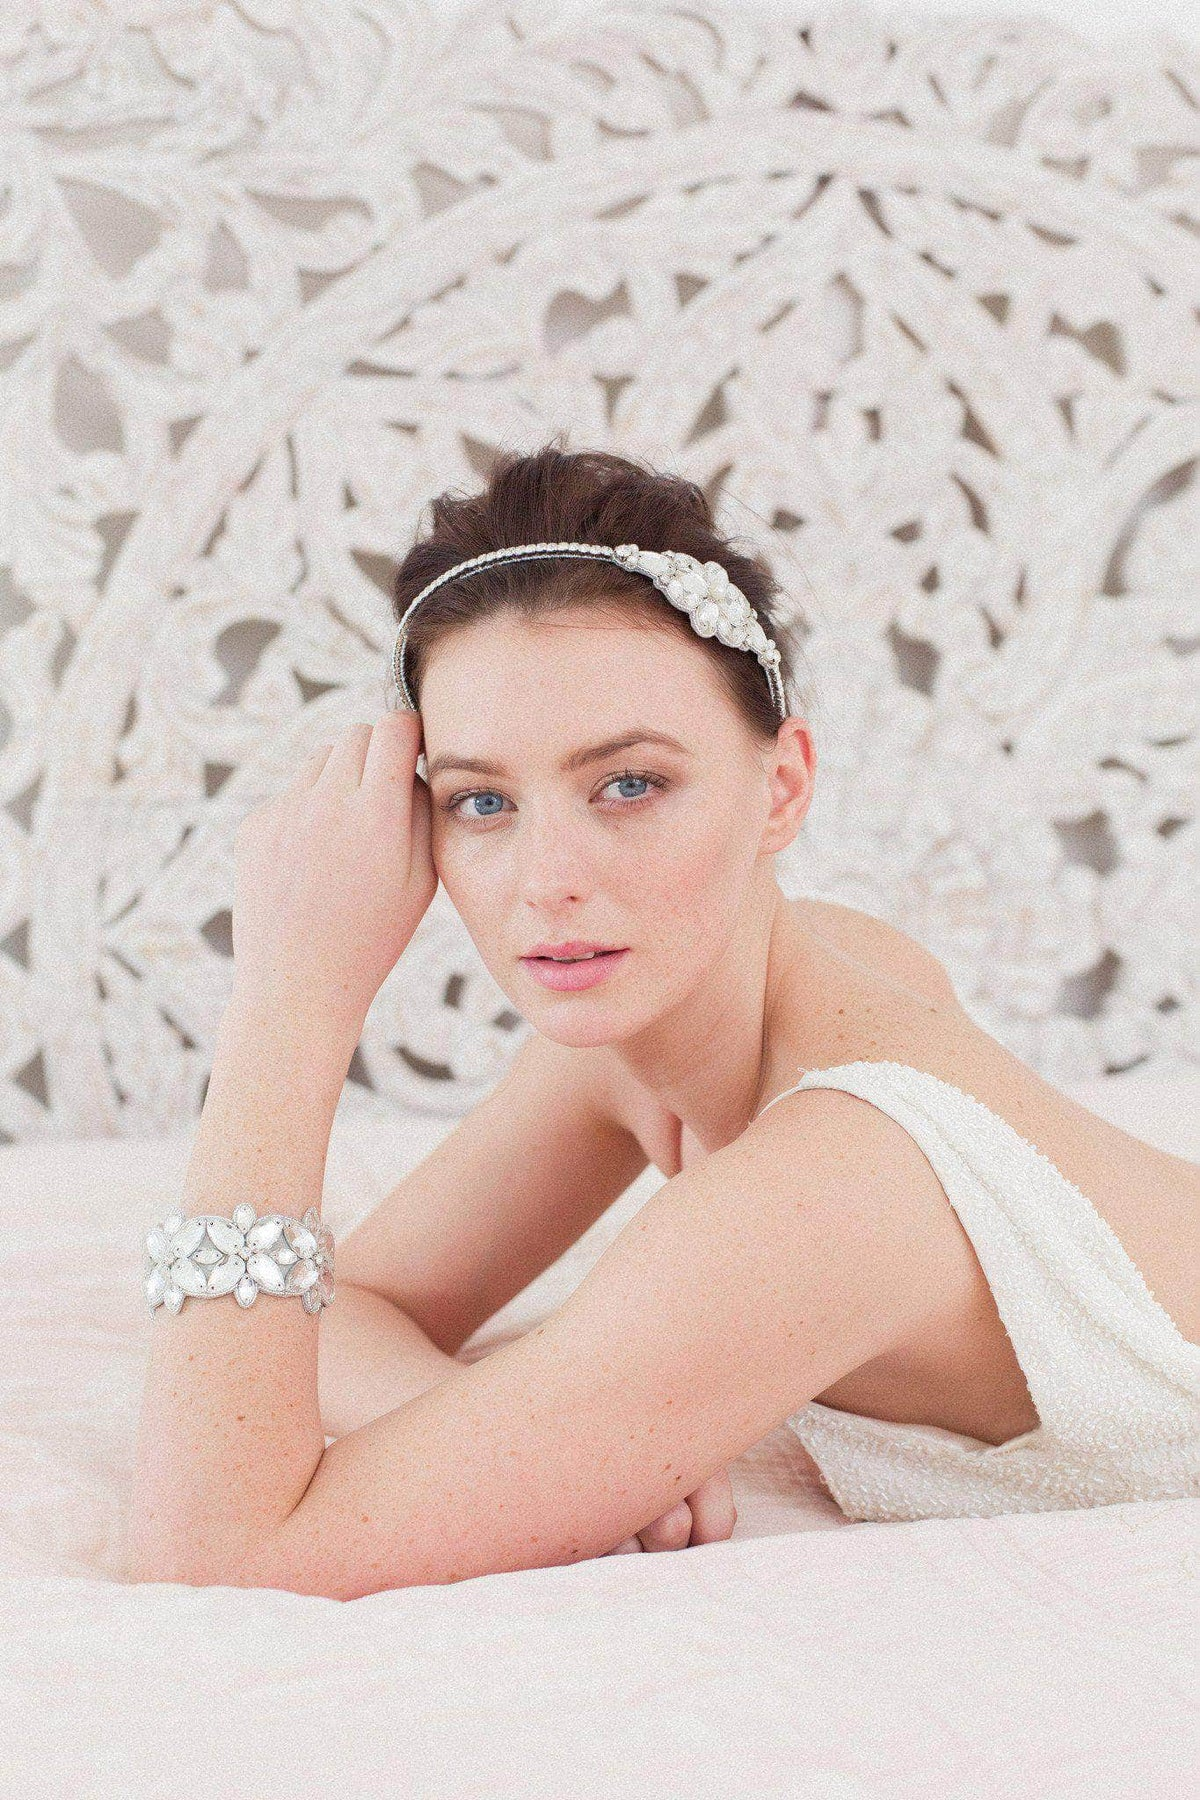 Statement silver wedding headband with crystals and pearls - 'Tulla'